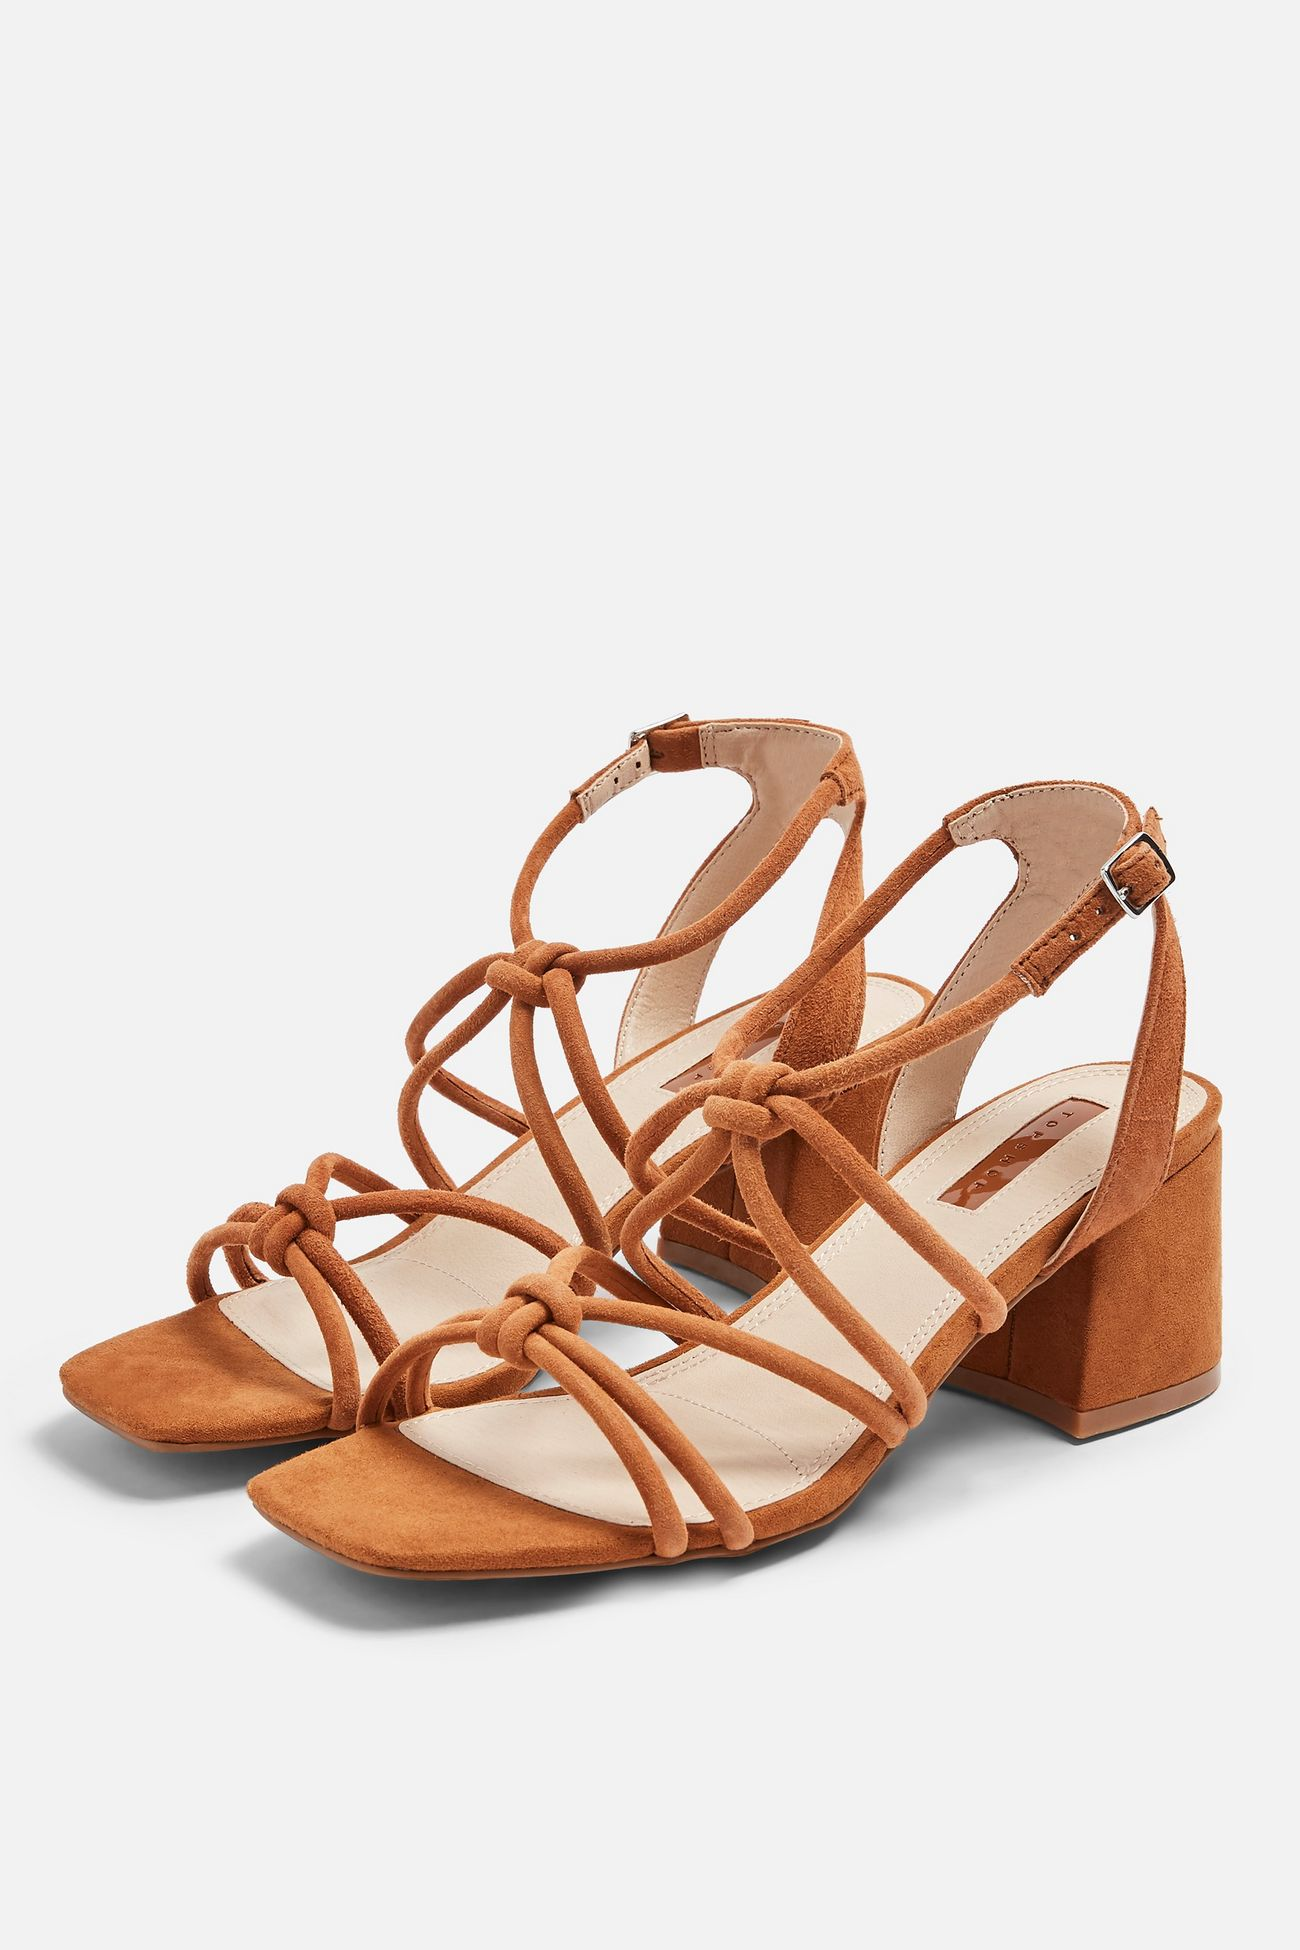 Sydney Leather Tan Tubular Sandals - Was $75 Now  $37.50